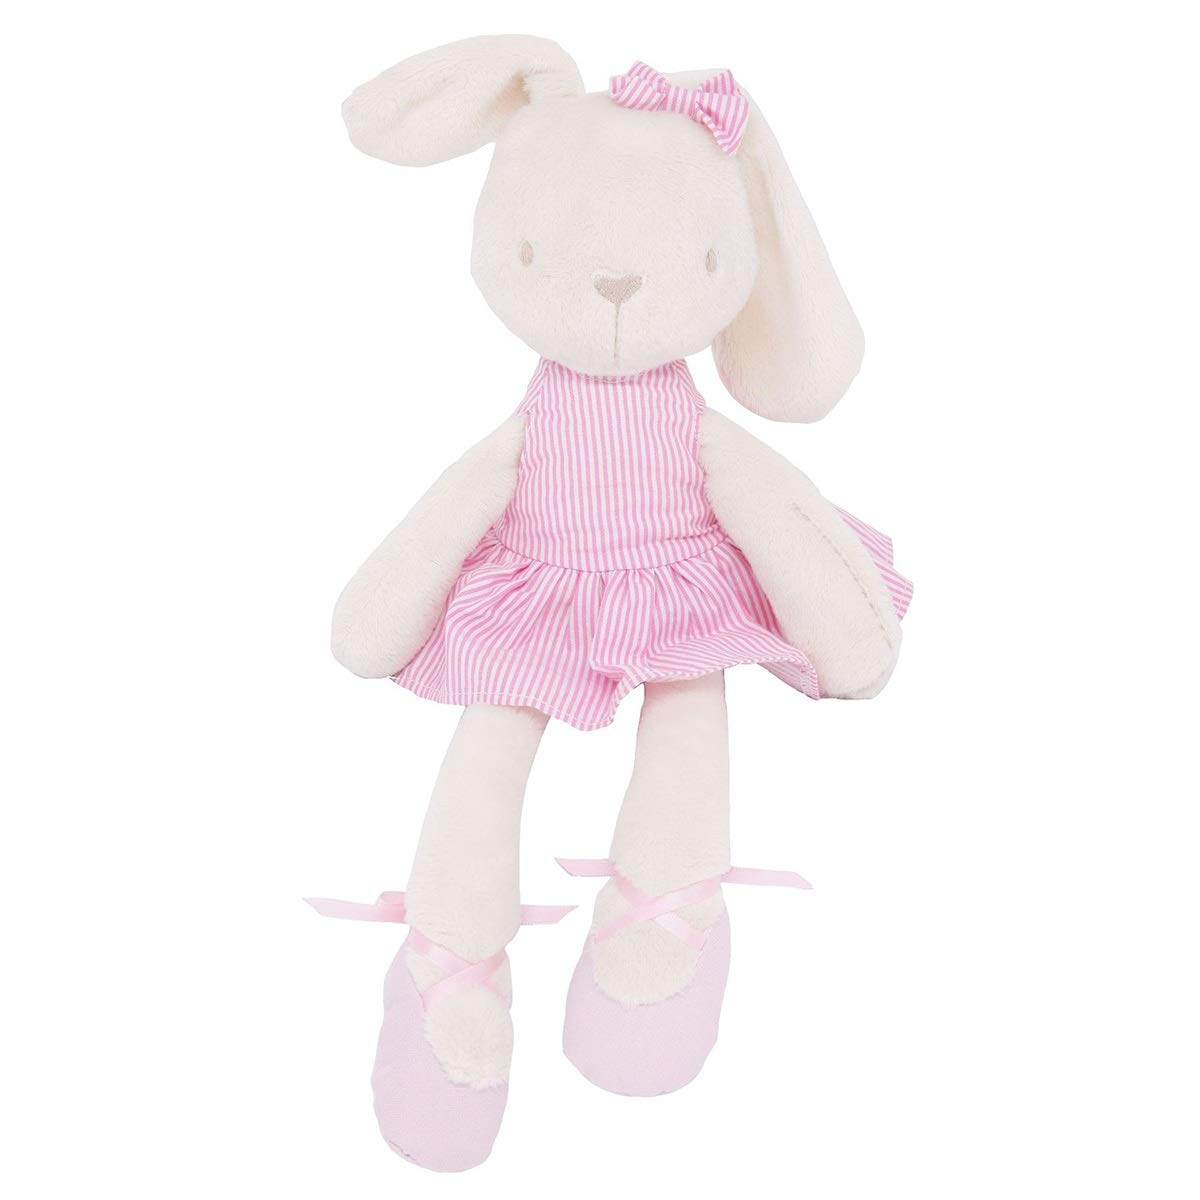 45cm Cute Rabbit Soft Plush Dress Rabbits Bunny Doll Soothing Toy Baby Pacifier Sleep Friend Girls Gift (Color : Light Green) Tabpole